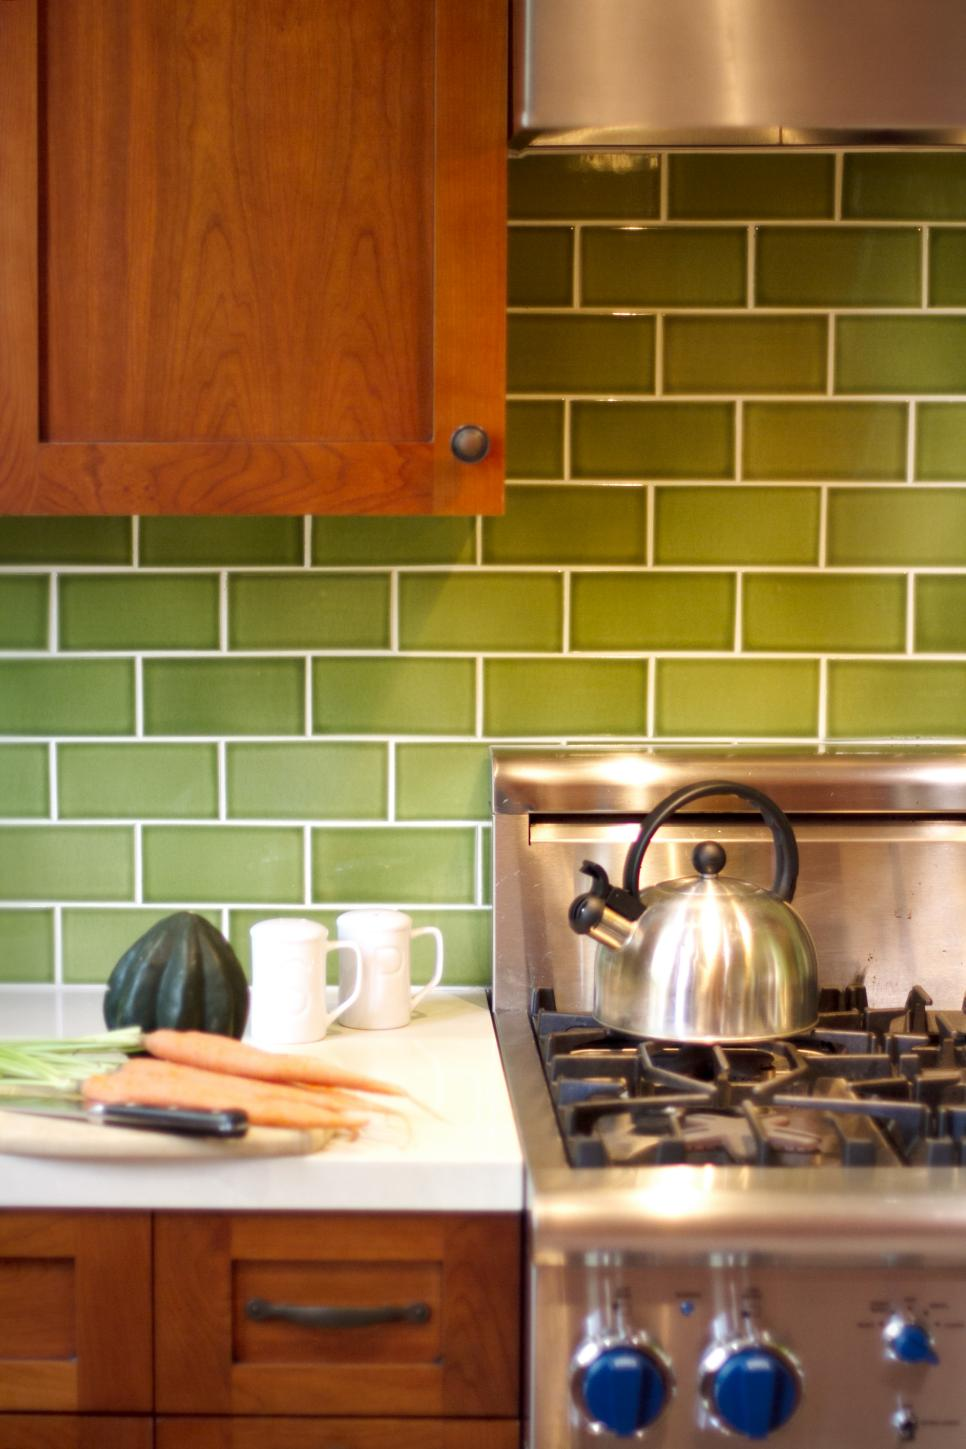 Backsplash Kitchen Subway Tile 11 Creative Subway Tile Backsplash Ideas  Hgtv